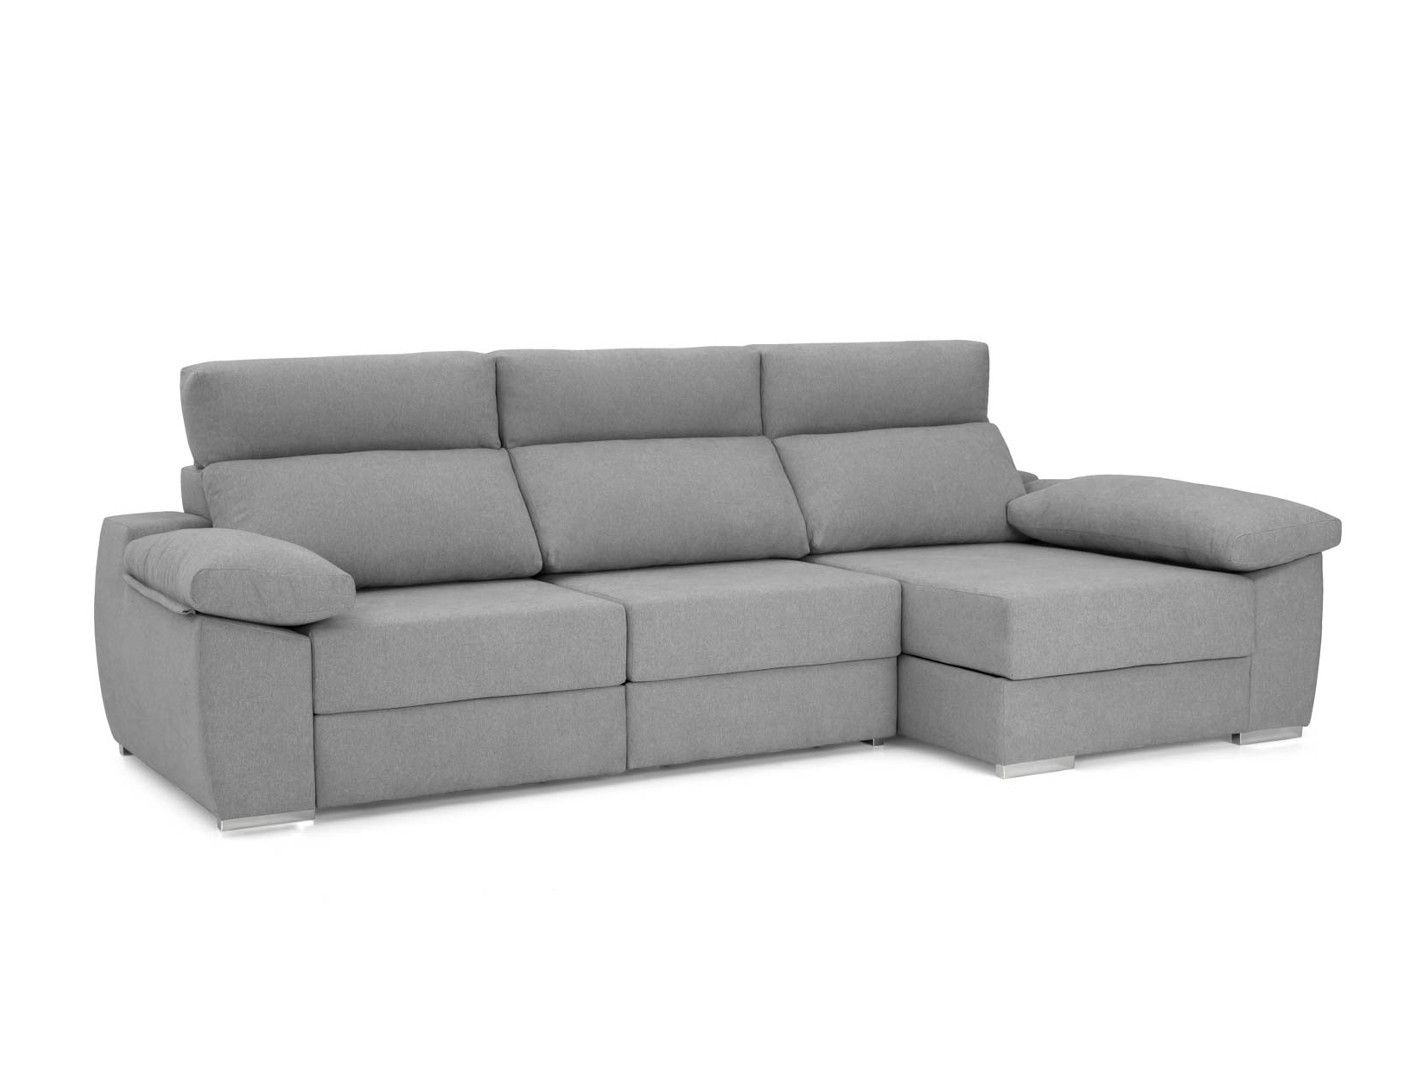 Mesa Comer Sofa Mesa De Centro Elevable En Colores Eco Polar